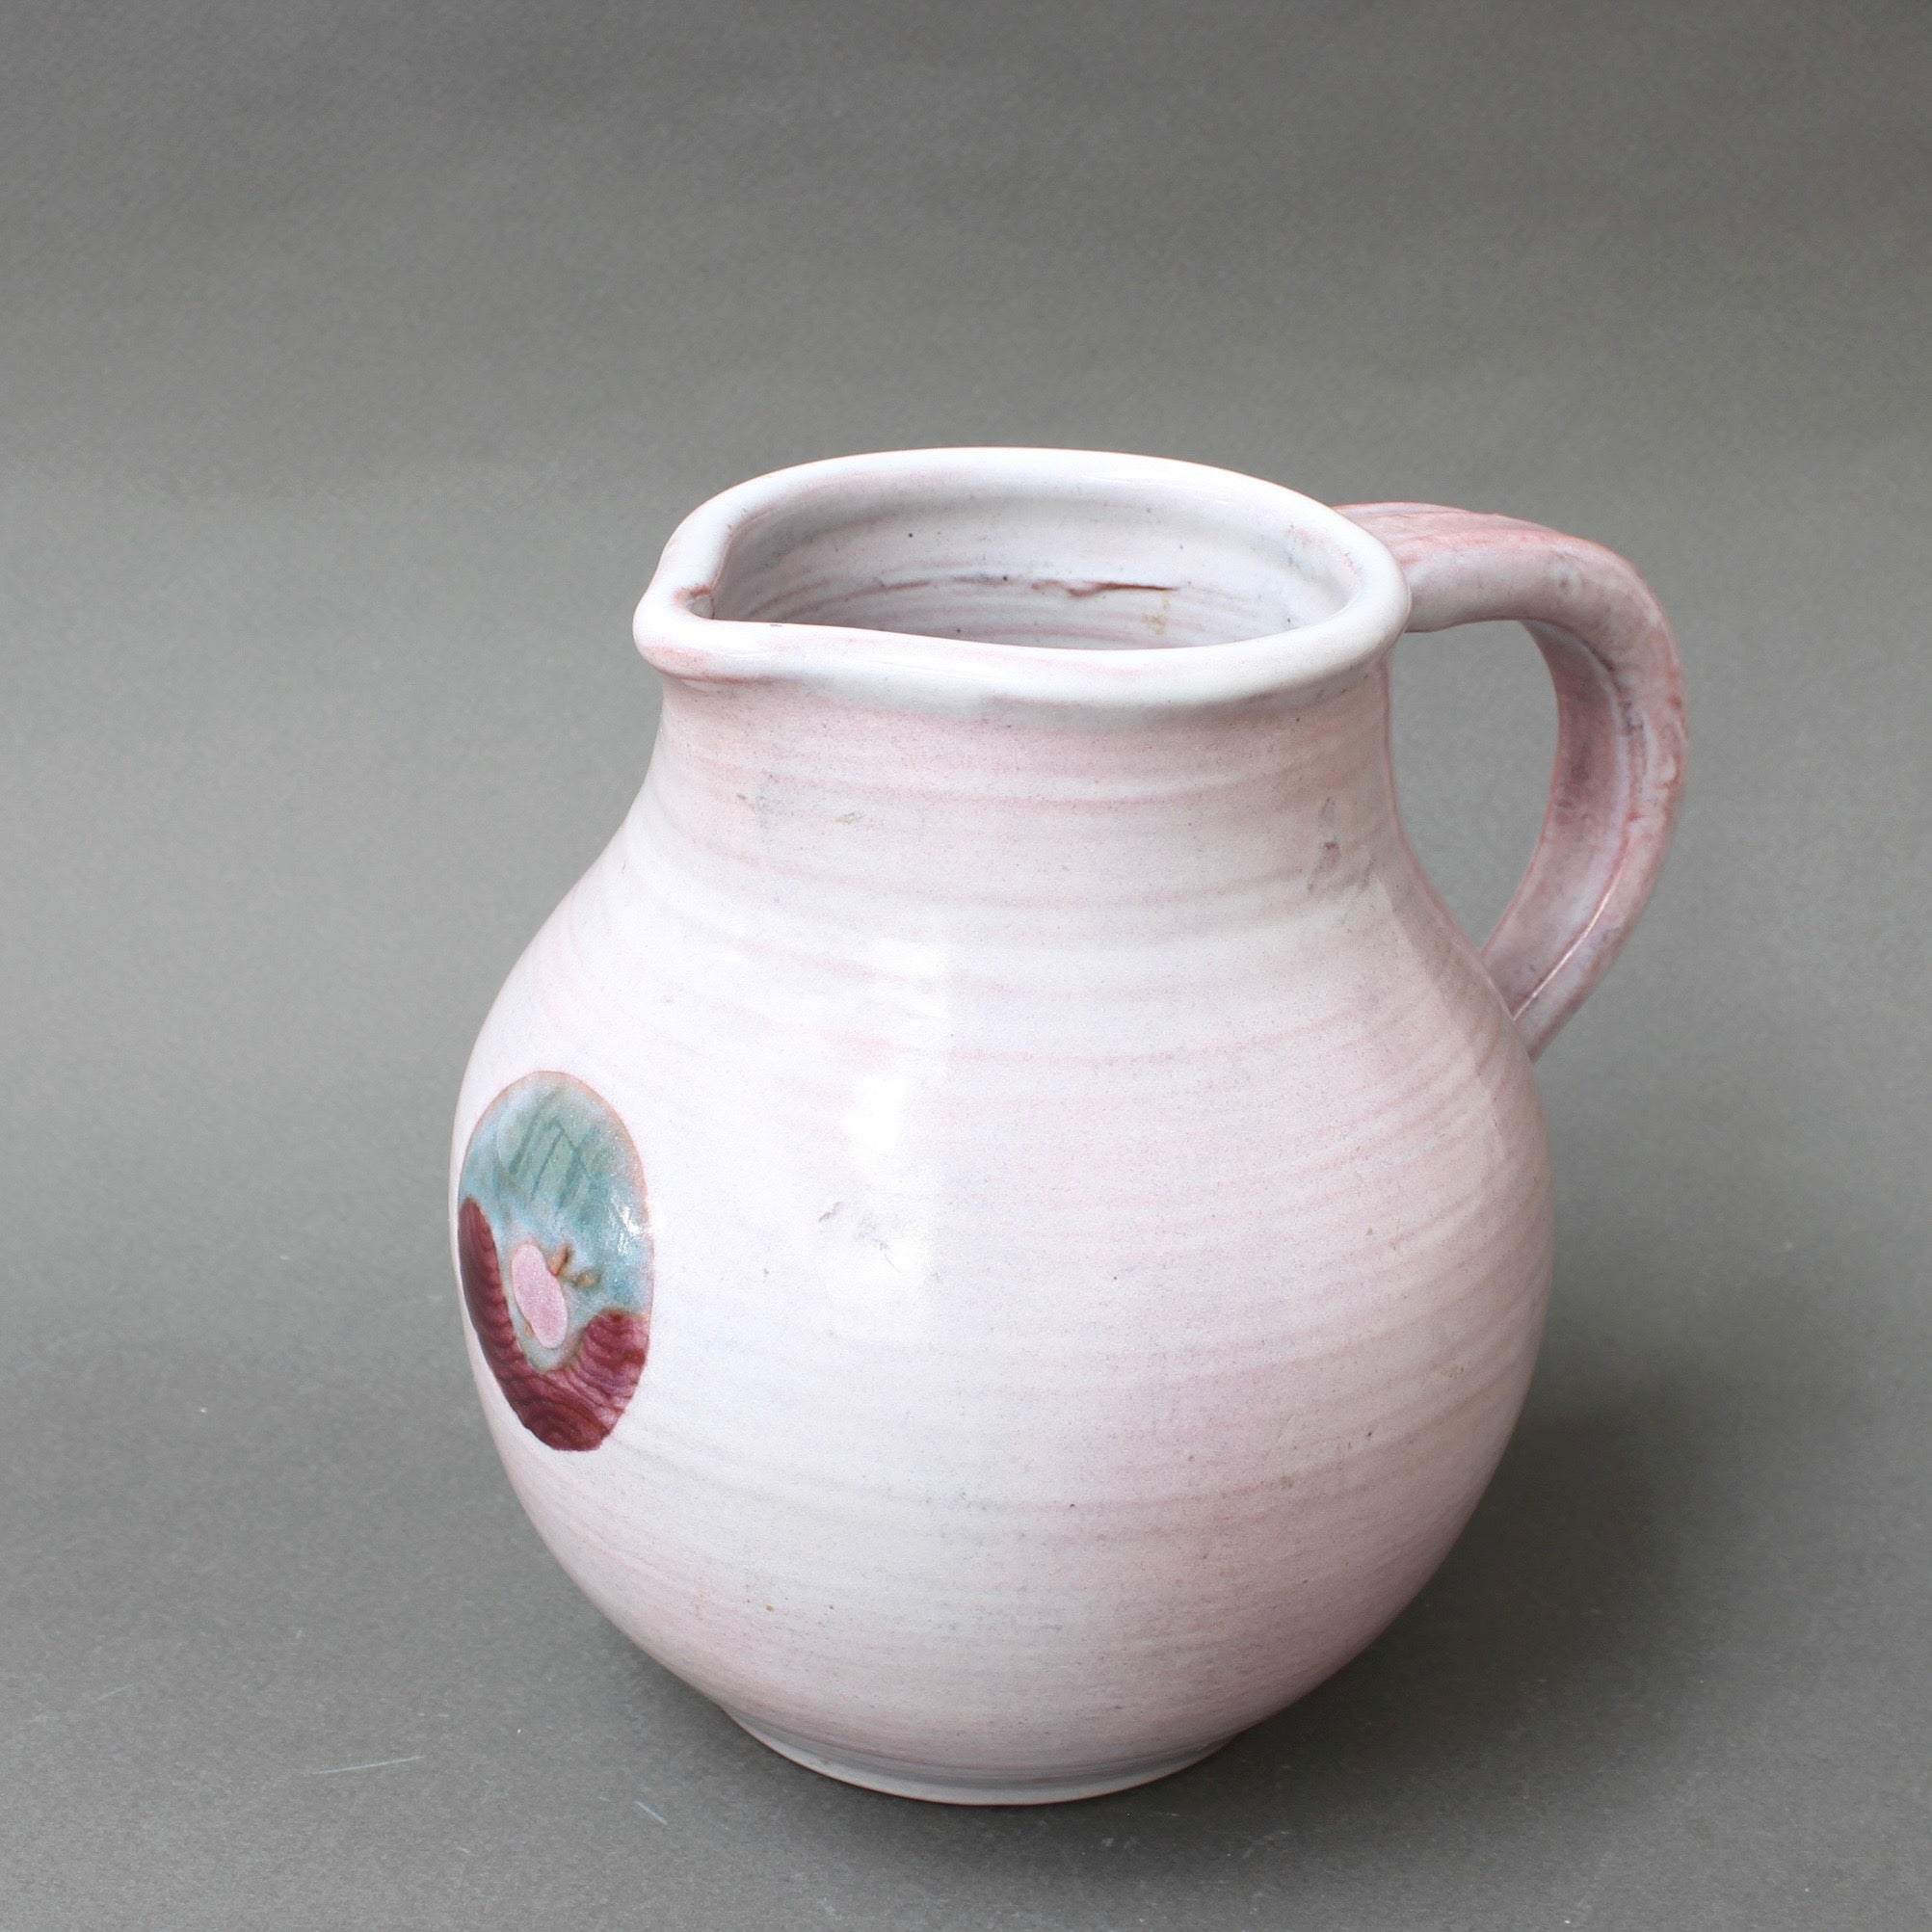 Vintage Decorative Pitcher by Cloutier Brothers (circa 1970s)